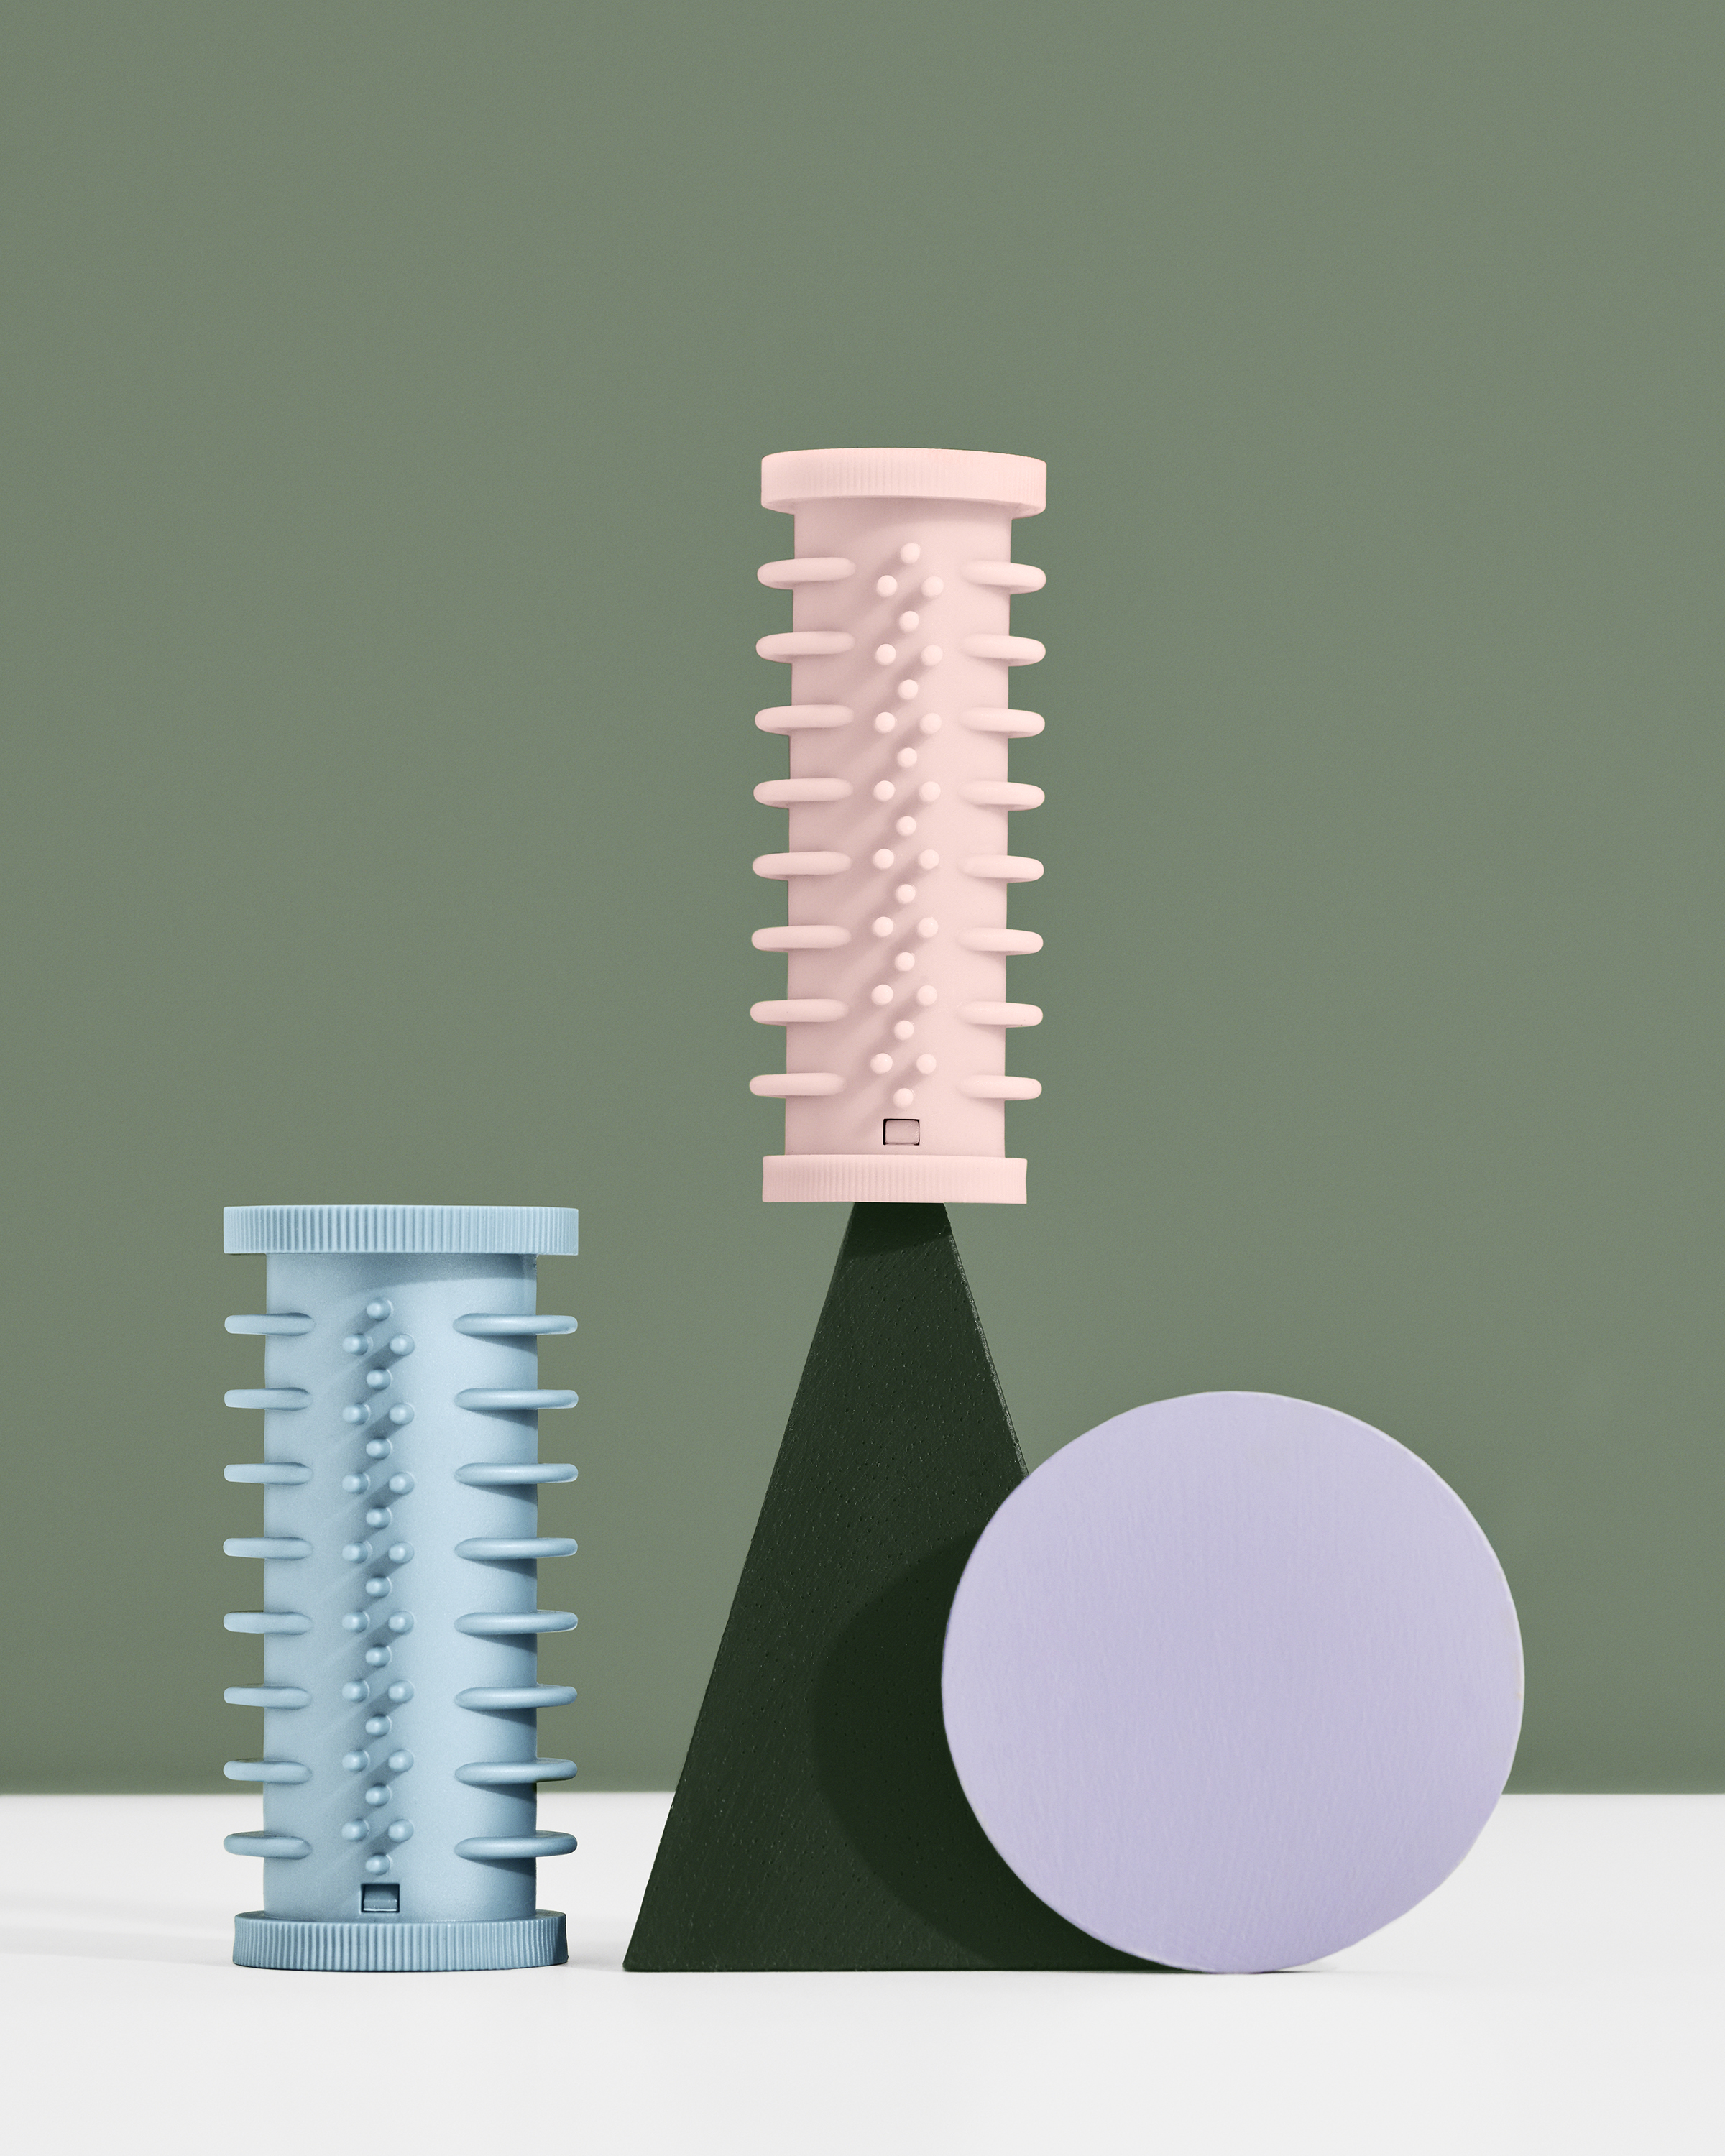 hair rollers on a graphic background